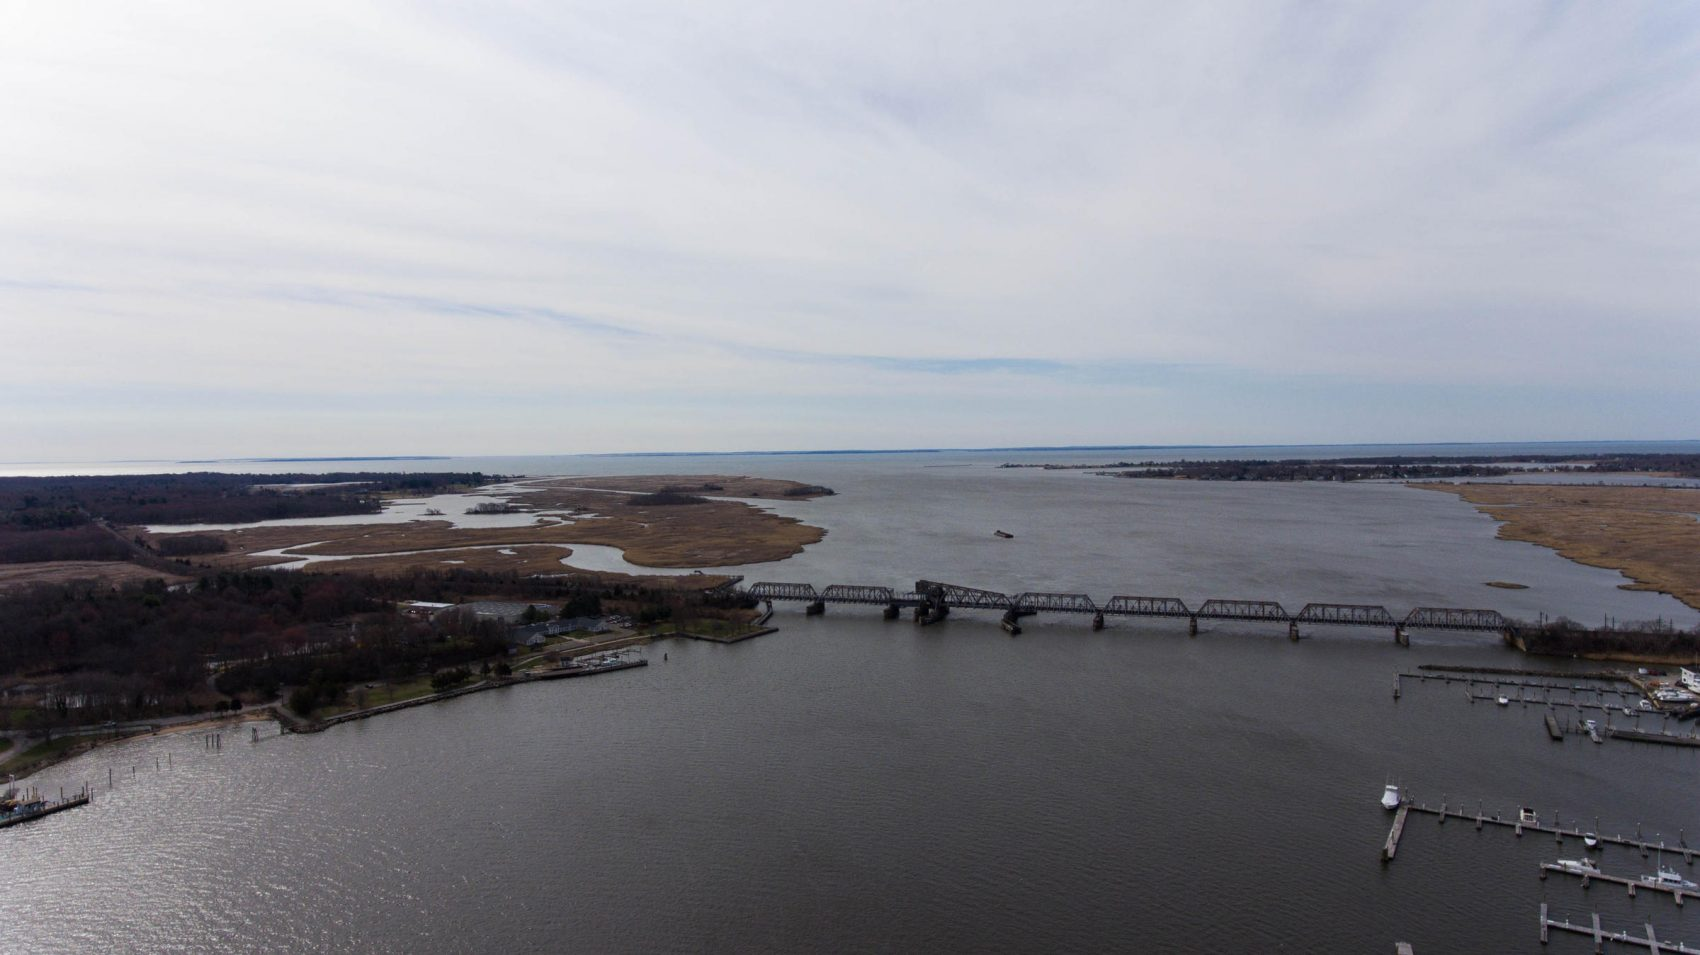 The mouth of the Connecticut River at Old Saybrook and Old Lyme, Conn. The Amtrak bridge is the last crossing before the river meets Long Island Sound. (Courtesy Ryan Caron King/NENC)